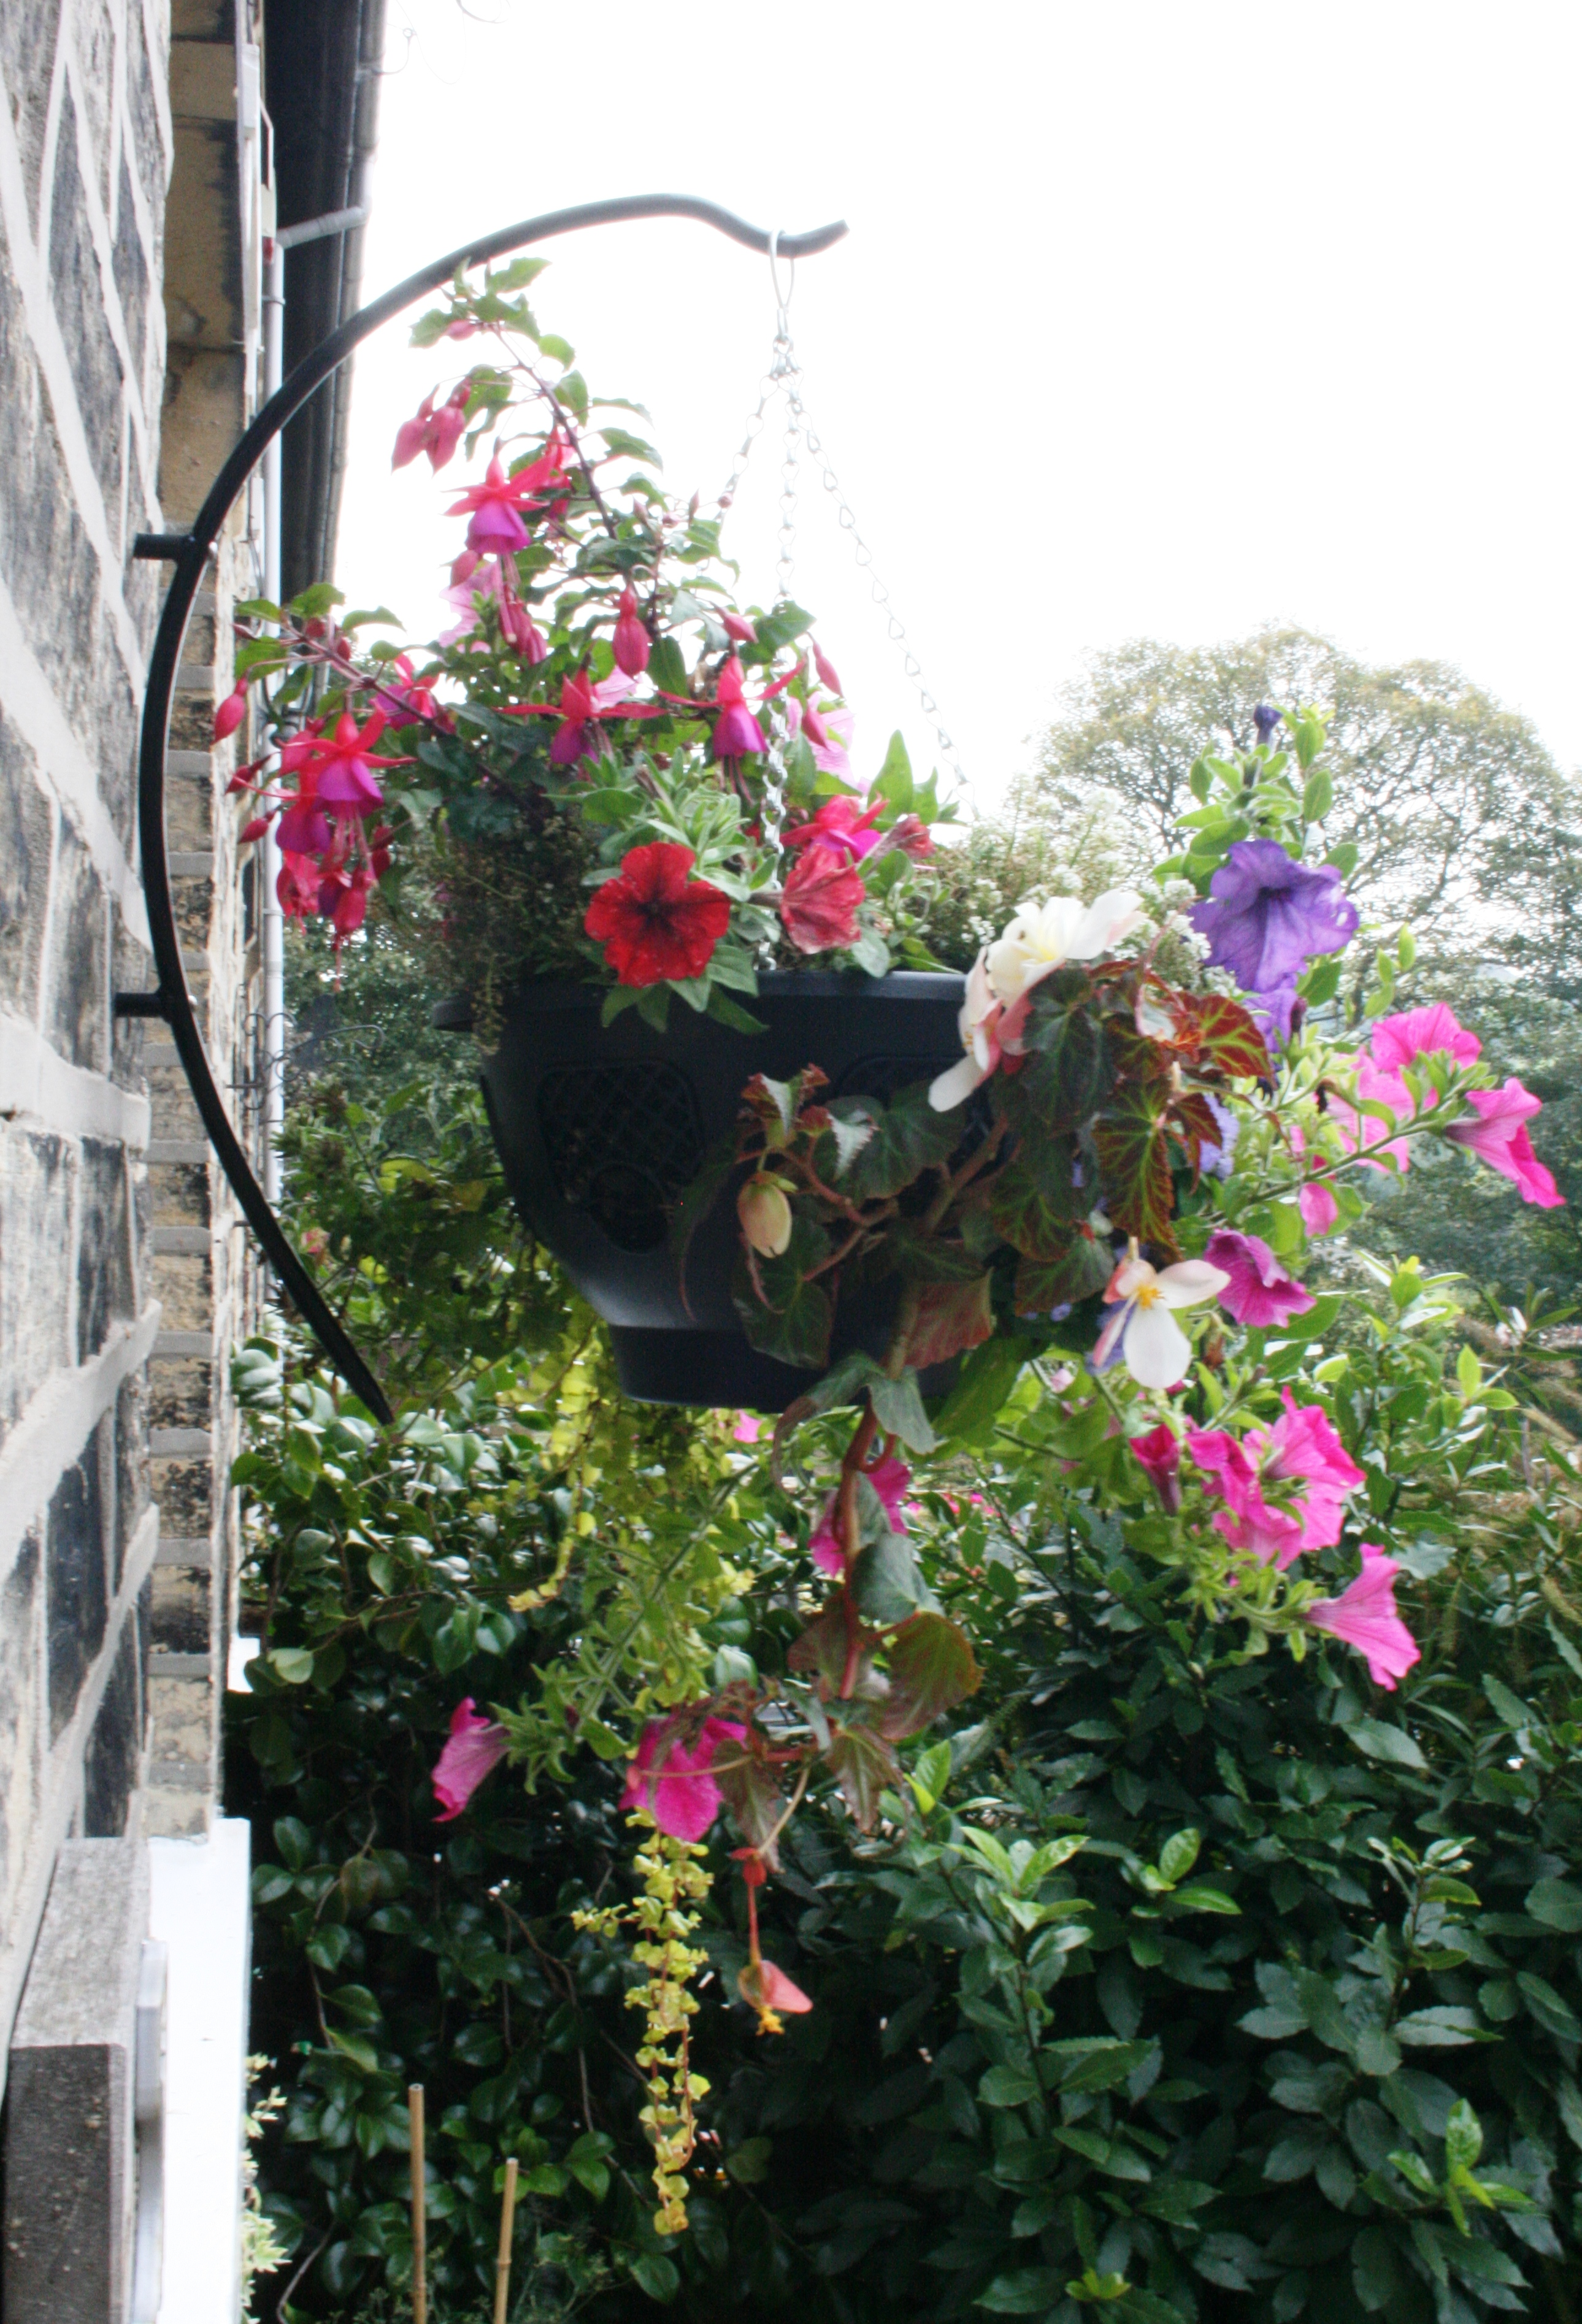 Planting Flowers In Hanging Baskets : What plants to put in hanging baskets garden features ideas